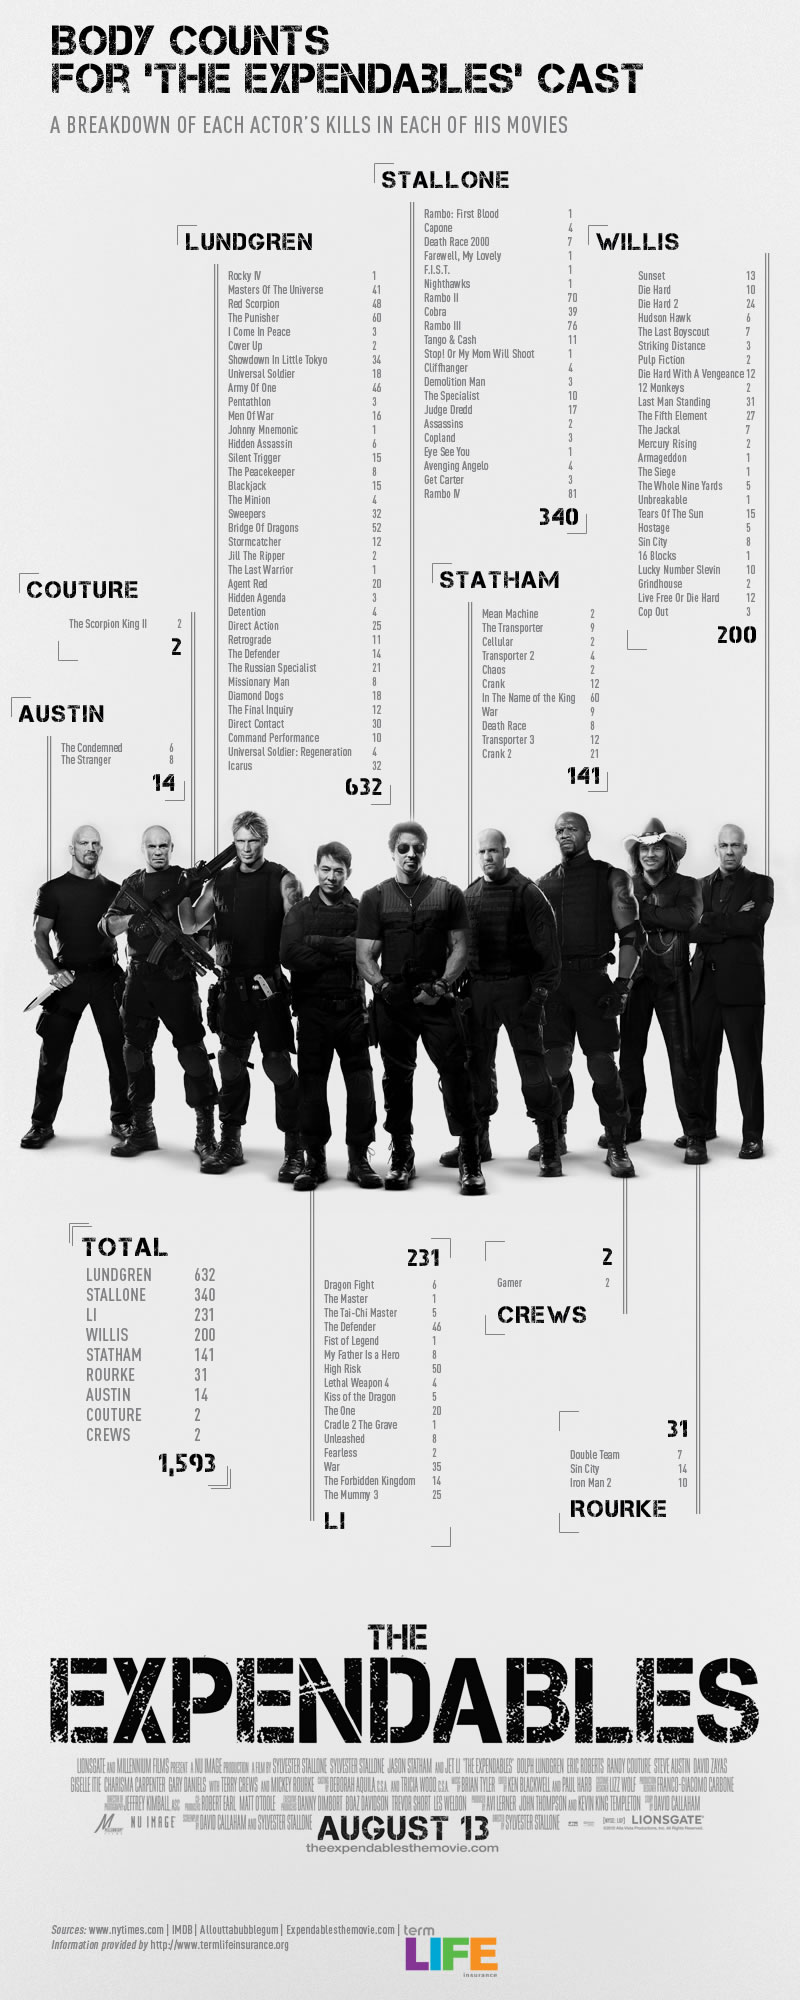 The Expendables body count